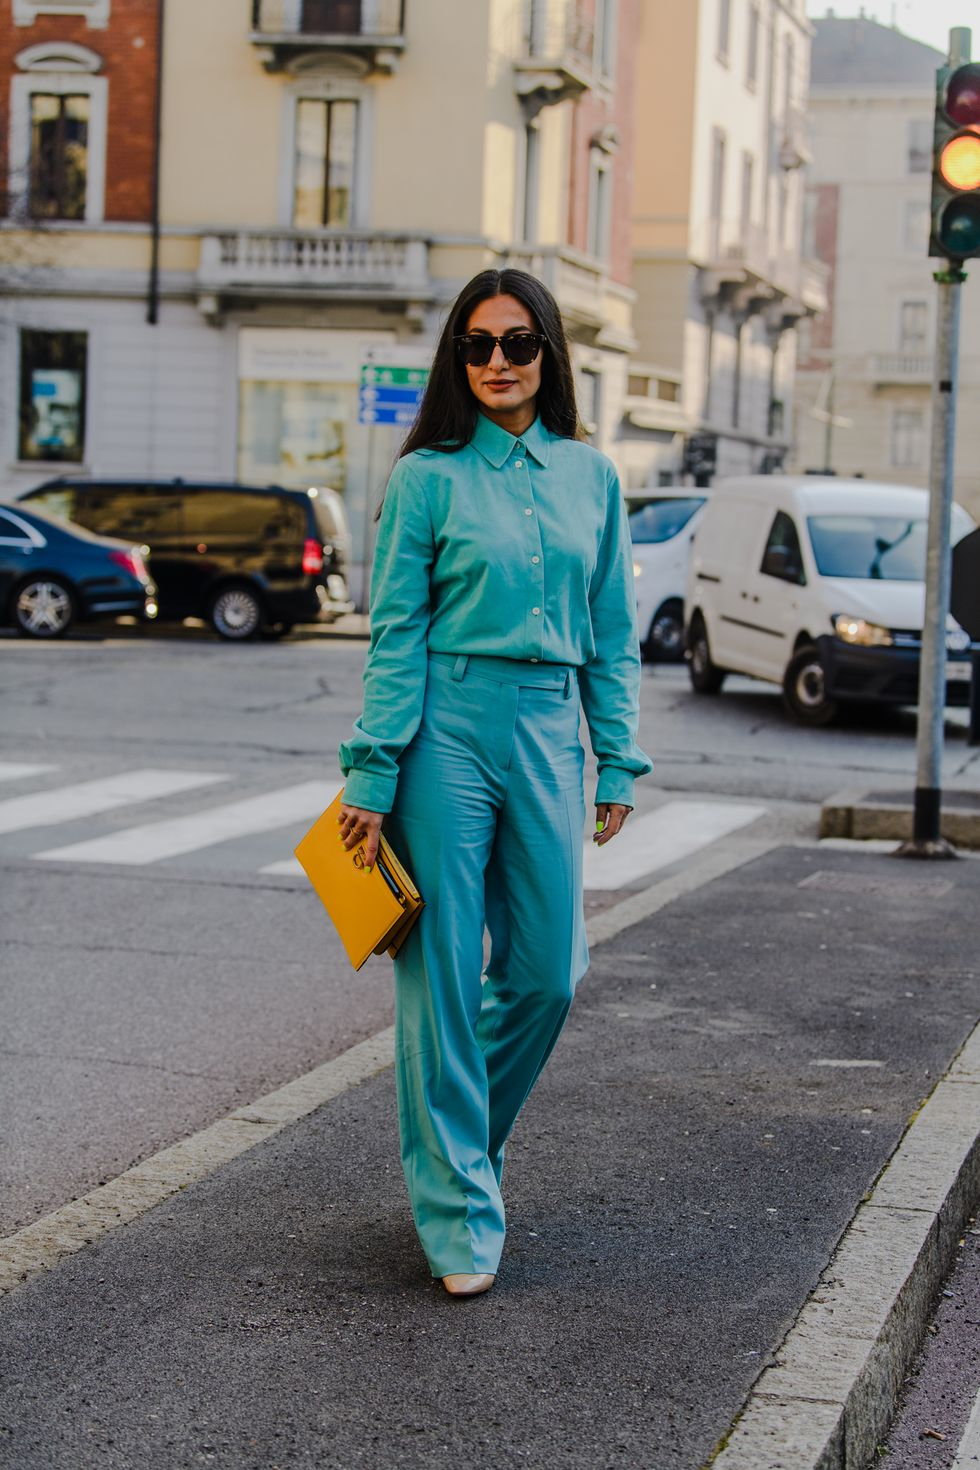 Milan Fashion Week 2020 milan fashion week 2020 The Street Style Trends From Milan Fashion Week 2020 fw20 mfw milan street style tyler joe day 4 024 1582486405